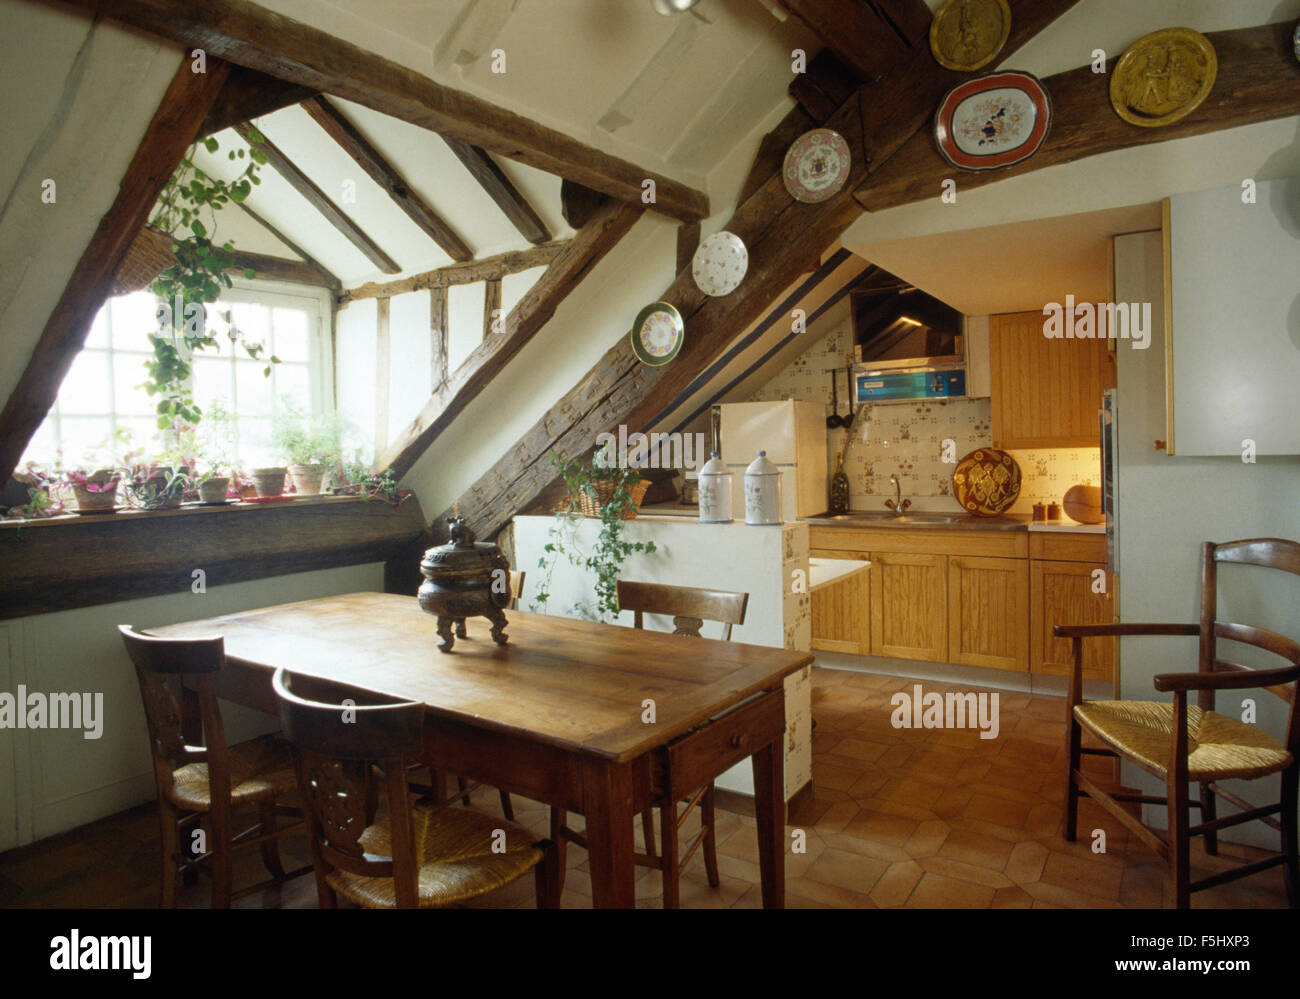 attic stockfotos attic bilder alamy. Black Bedroom Furniture Sets. Home Design Ideas